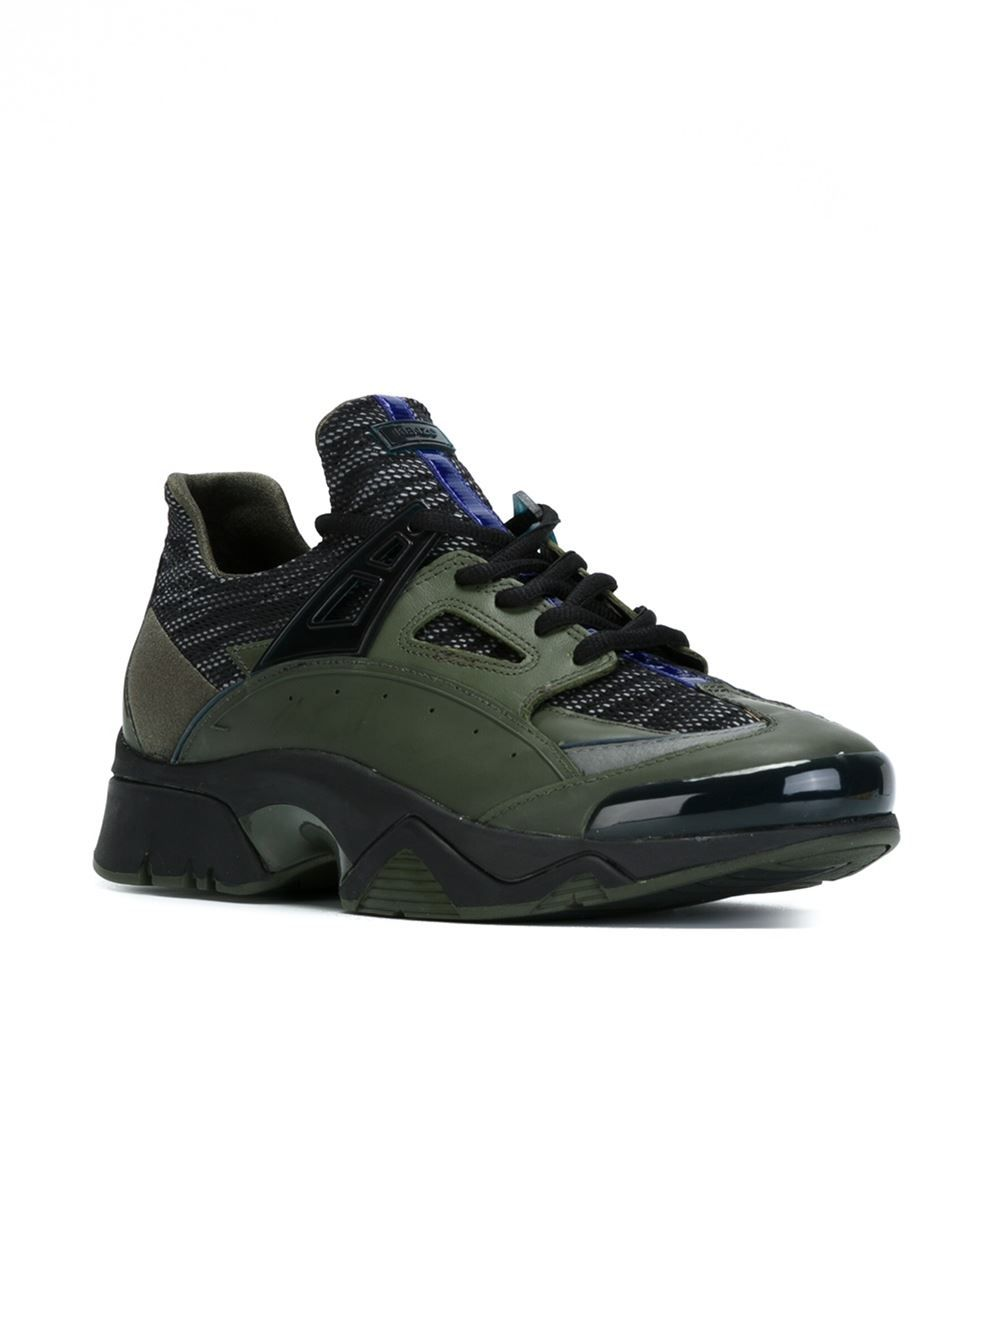 8433a722 Kenzo 'sonic' Sneakers - Capsule By Eso - Farfetch.com | shoes ...